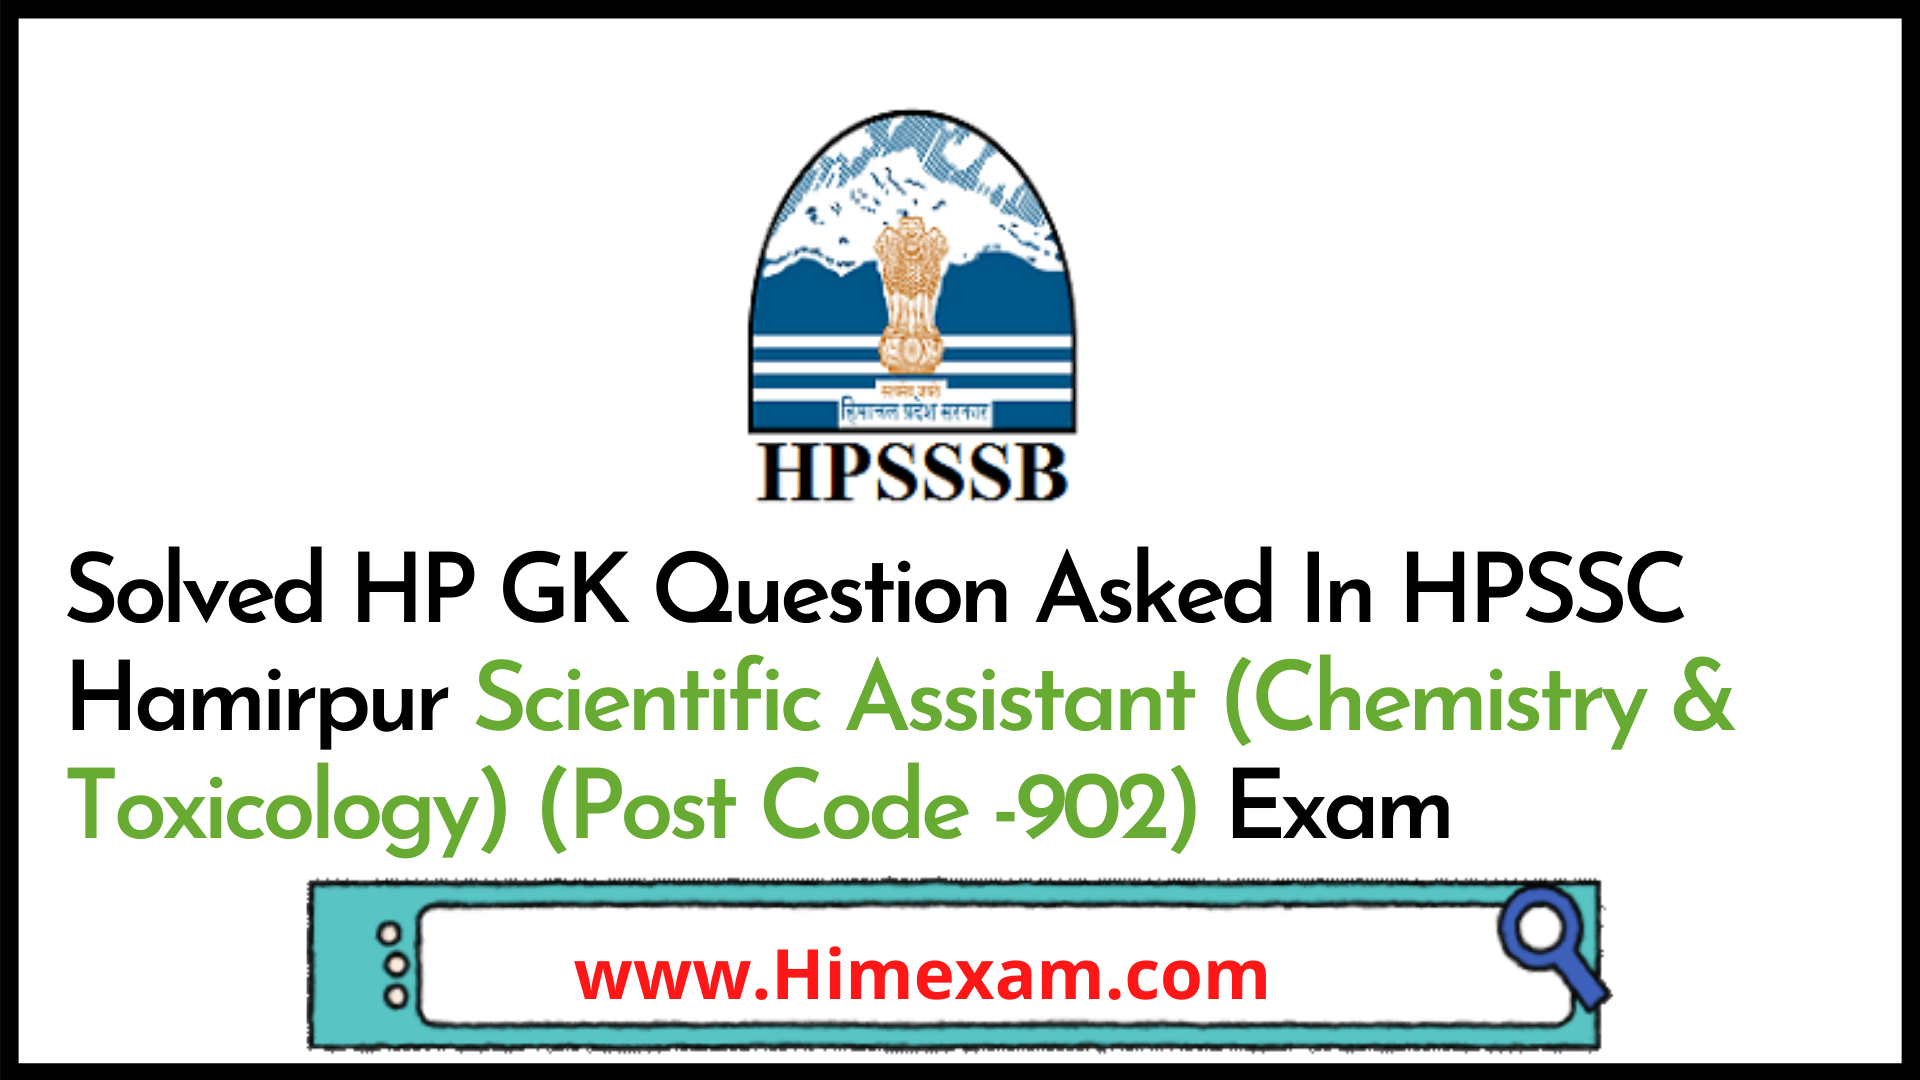 Solved HP GK Question Asked In HPSSC Hamirpur Scientific Assistant (Chemistry & Toxicology) (Post Code -902) Exam